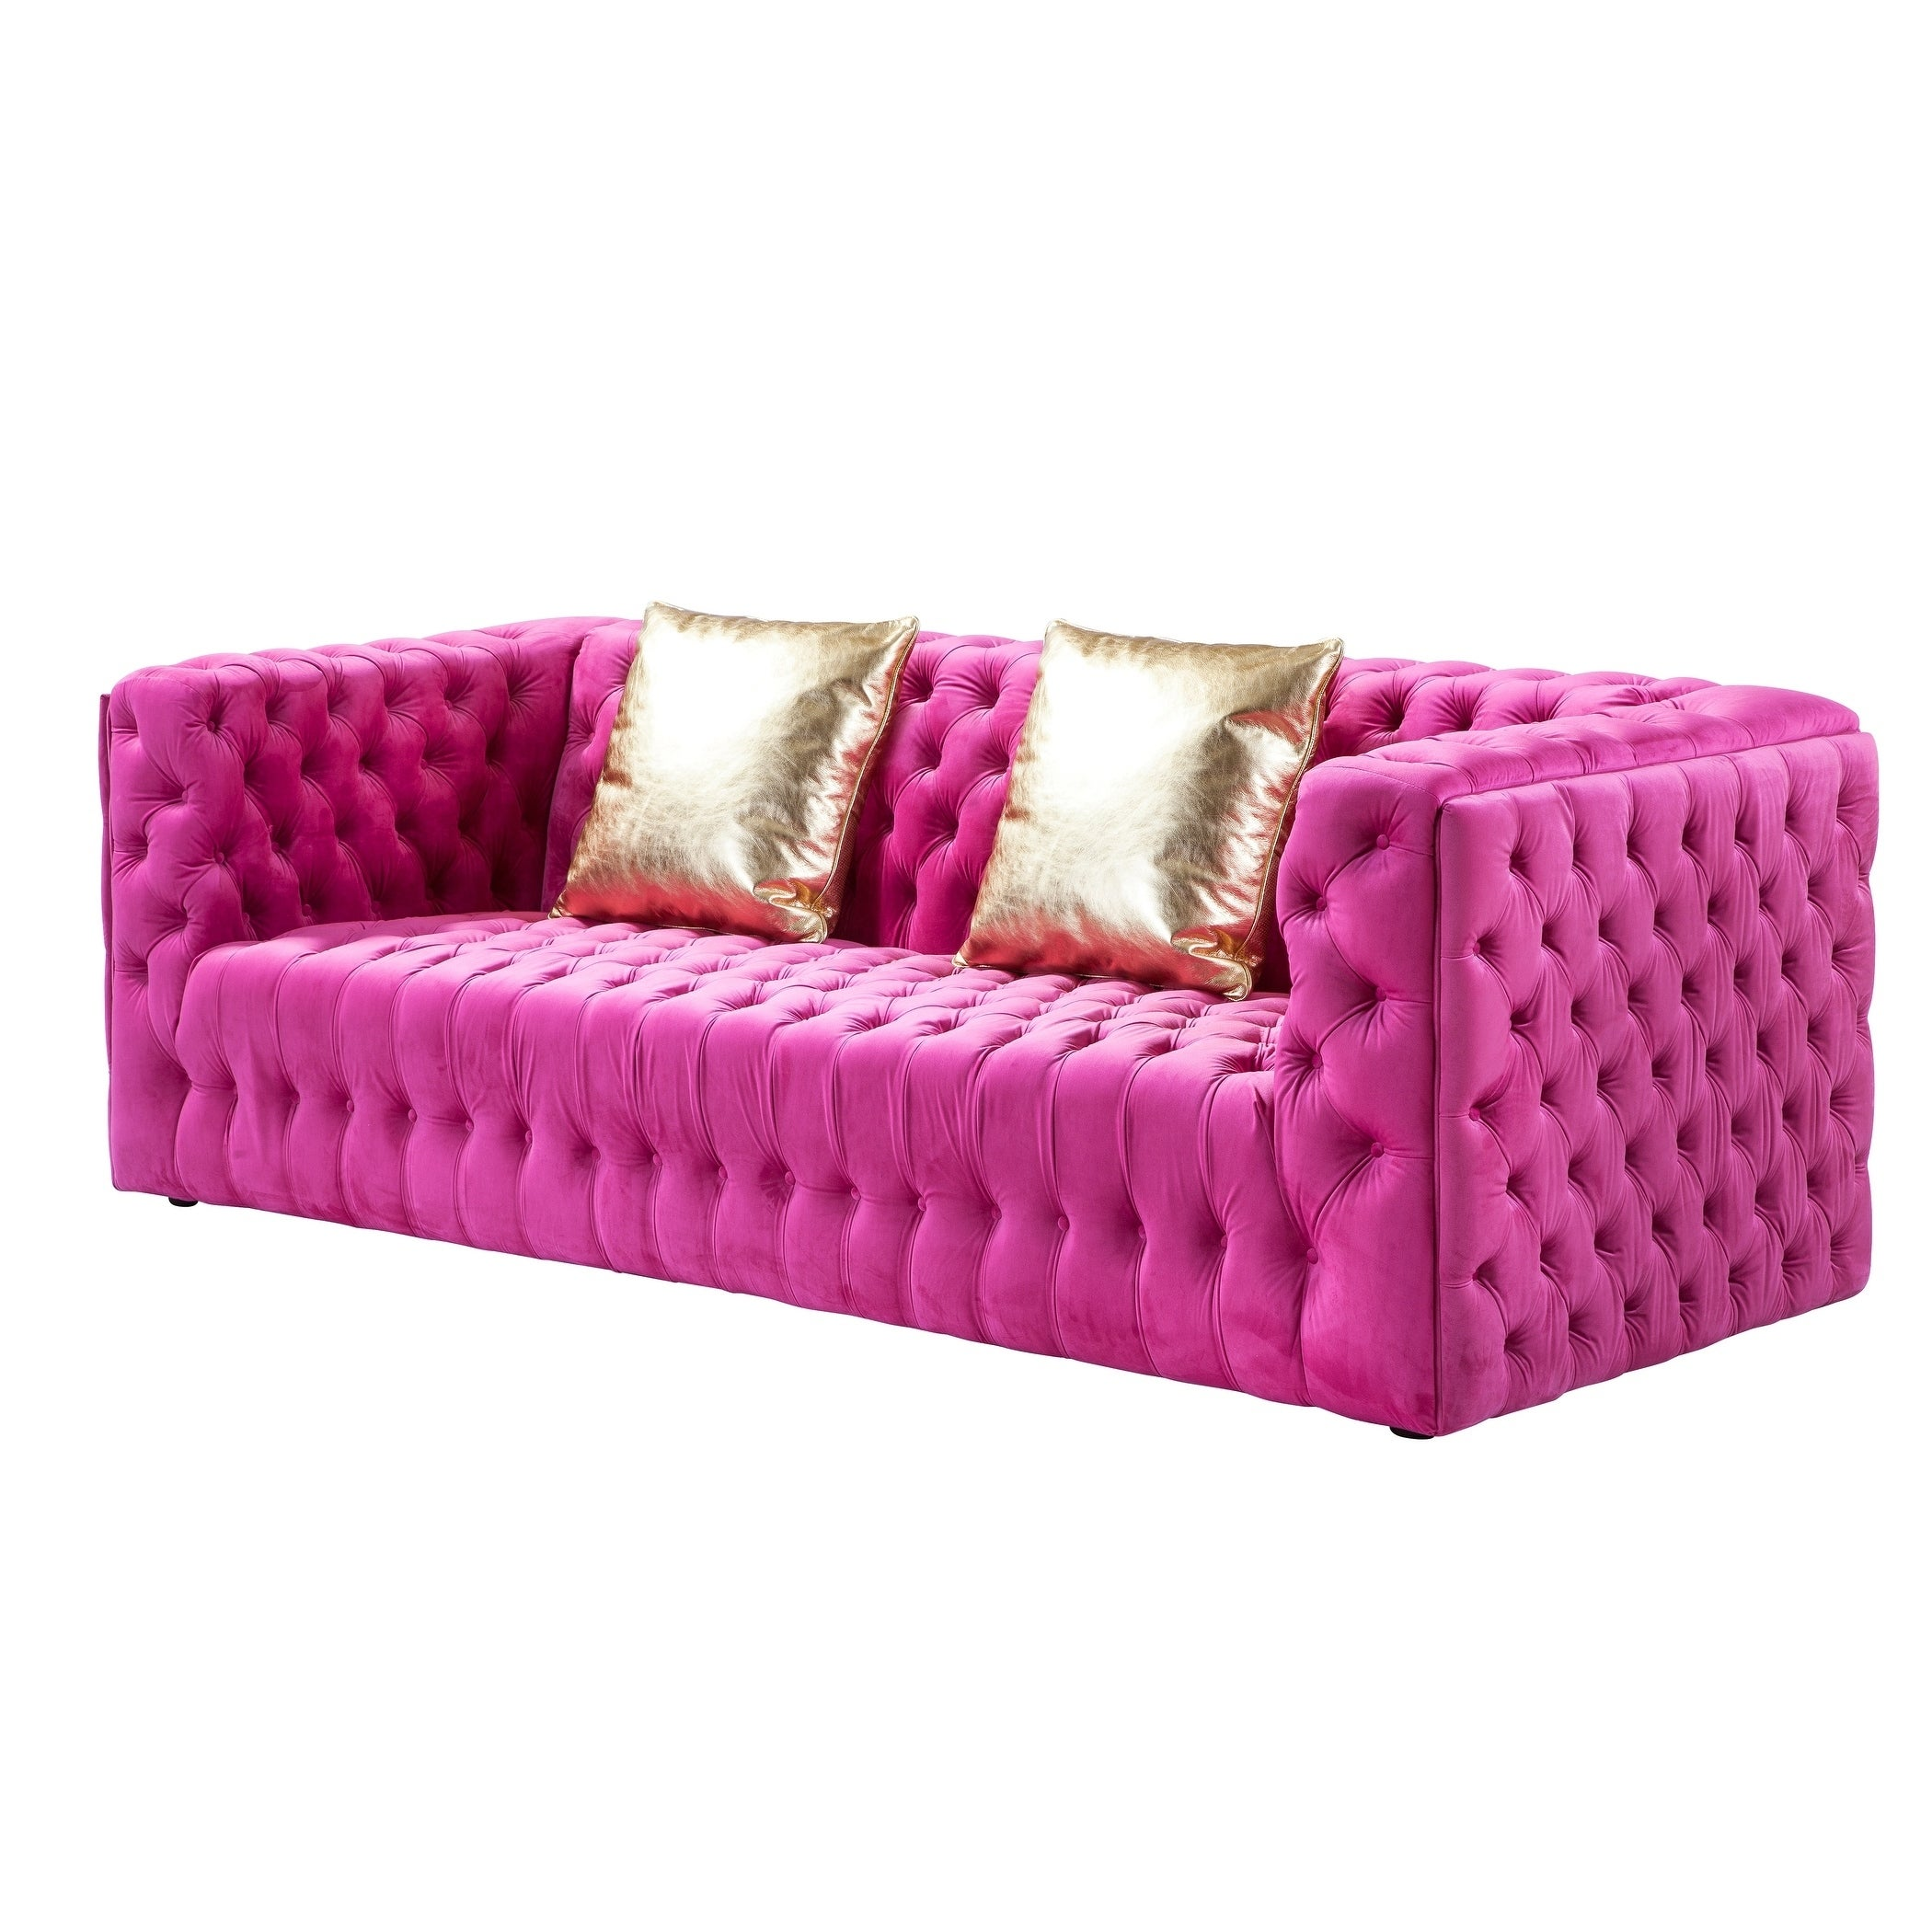 Pasargad vicenza collection velvet tufted sofa